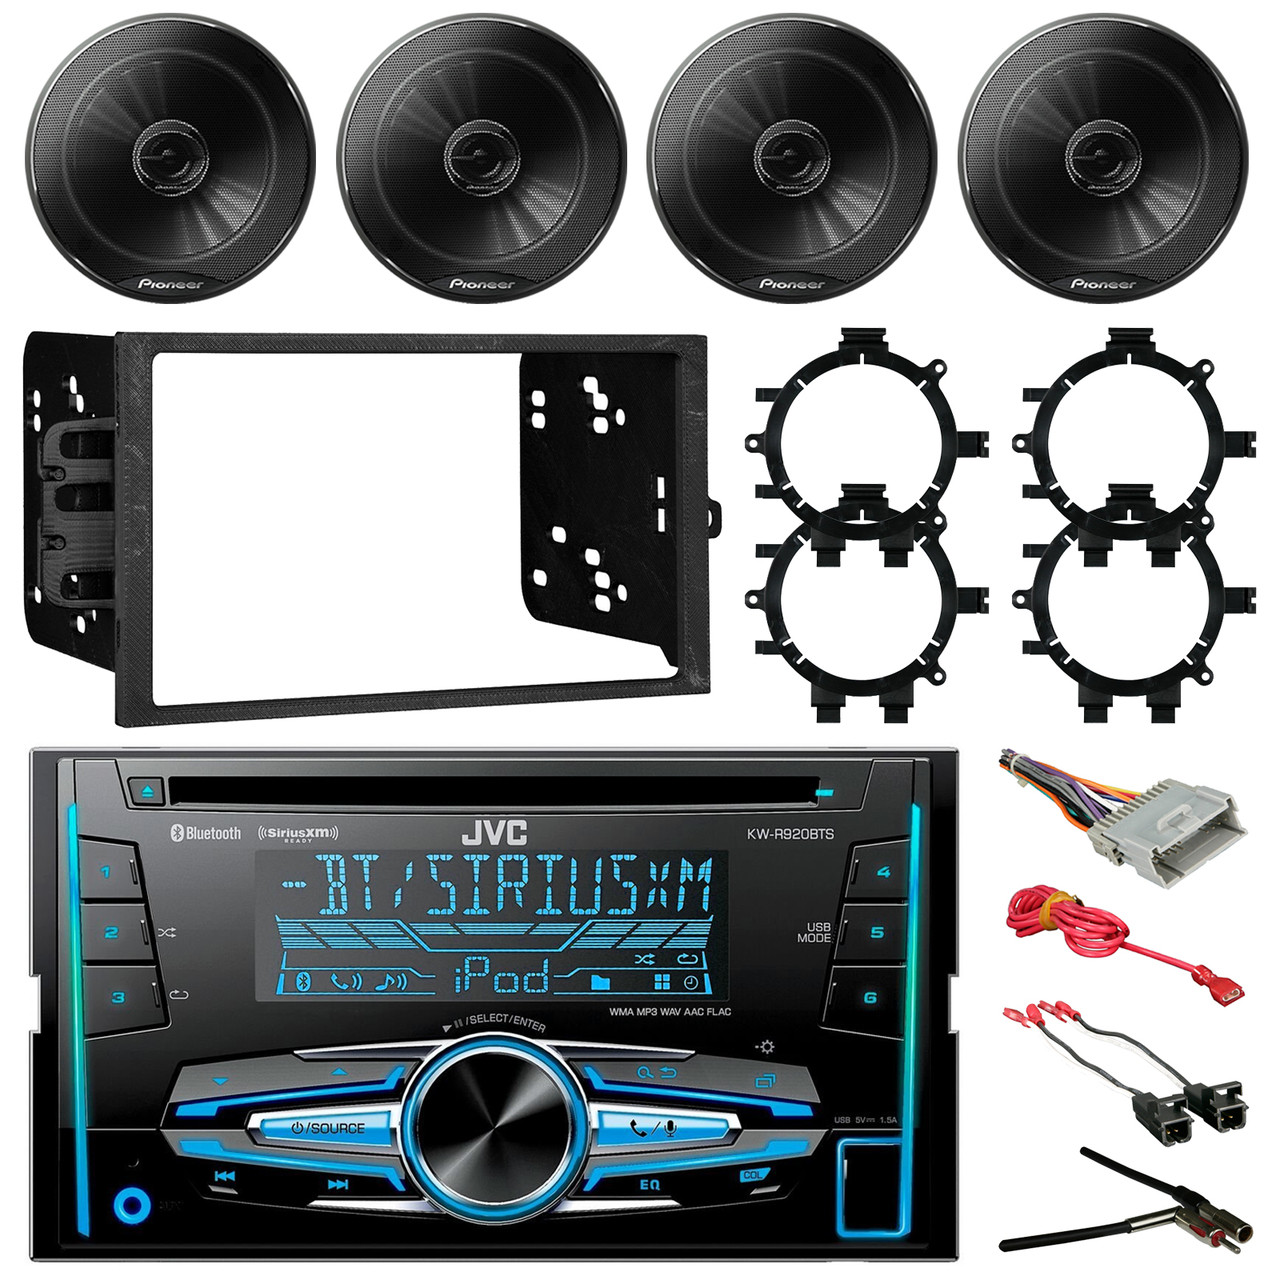 hight resolution of jvc kw r920bts double din bluetooth car cd player stereo receiver bundle combo with 4x 6 5 inch 250w coaxial speakers w brackets 4x wiring harness